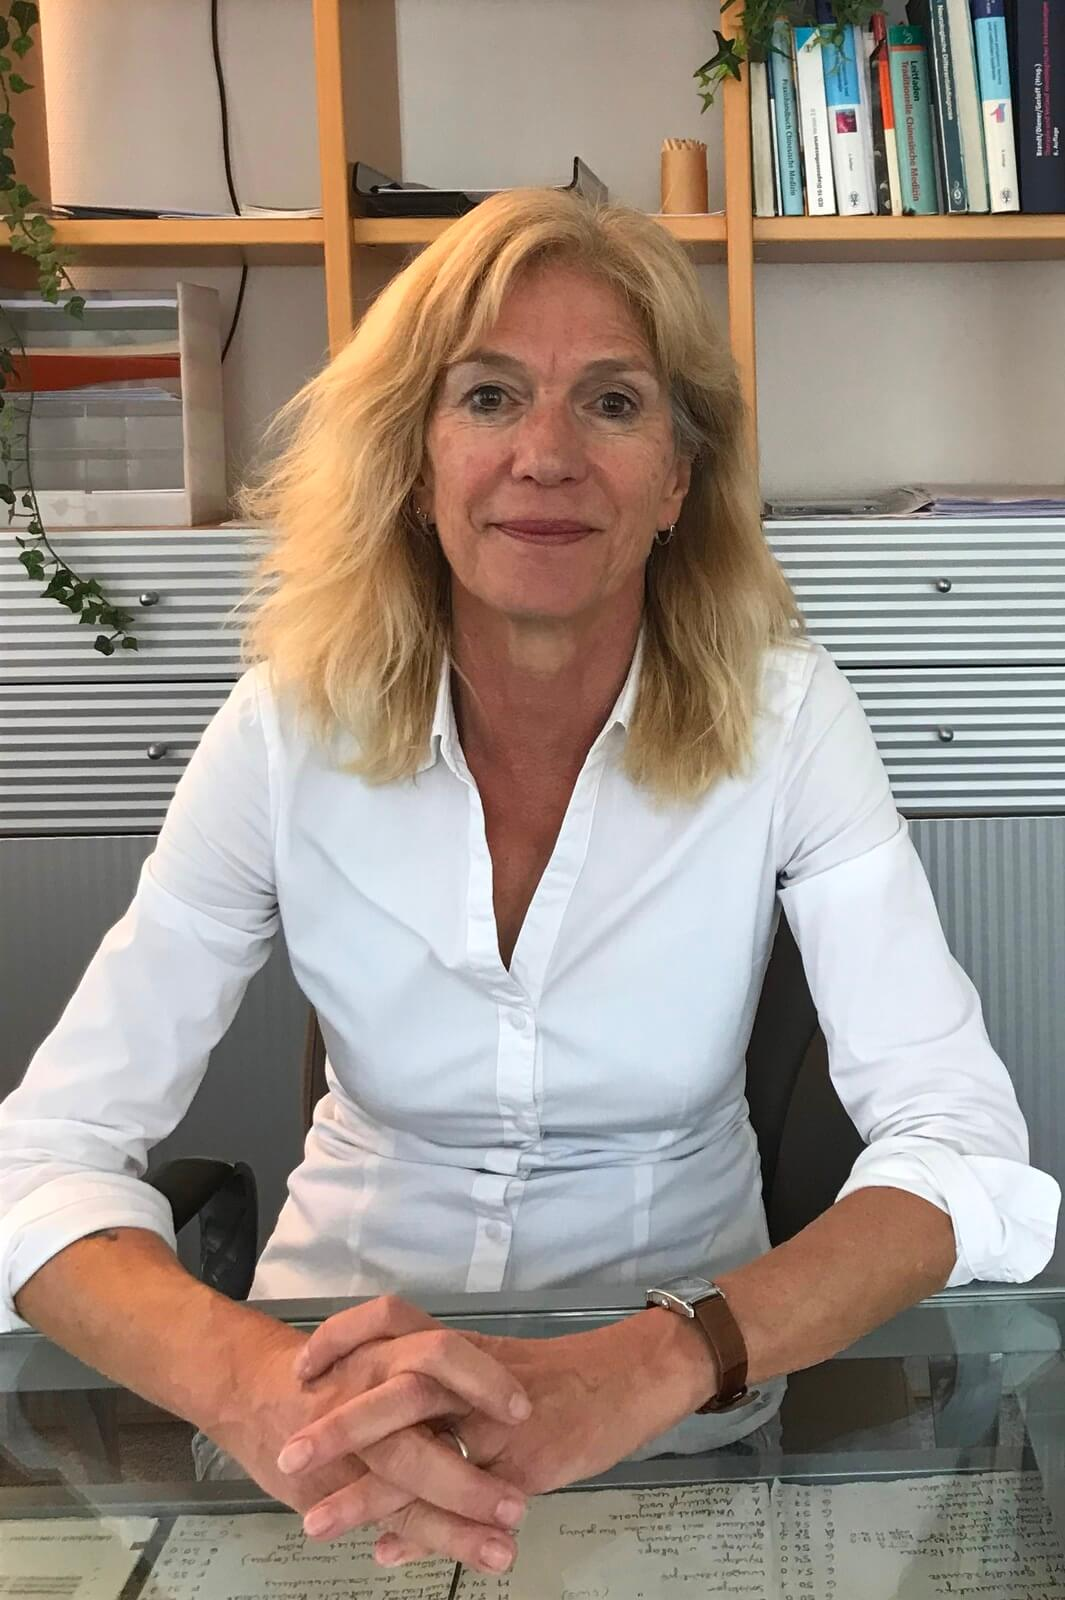 Dr. med. Ina Eiswirth